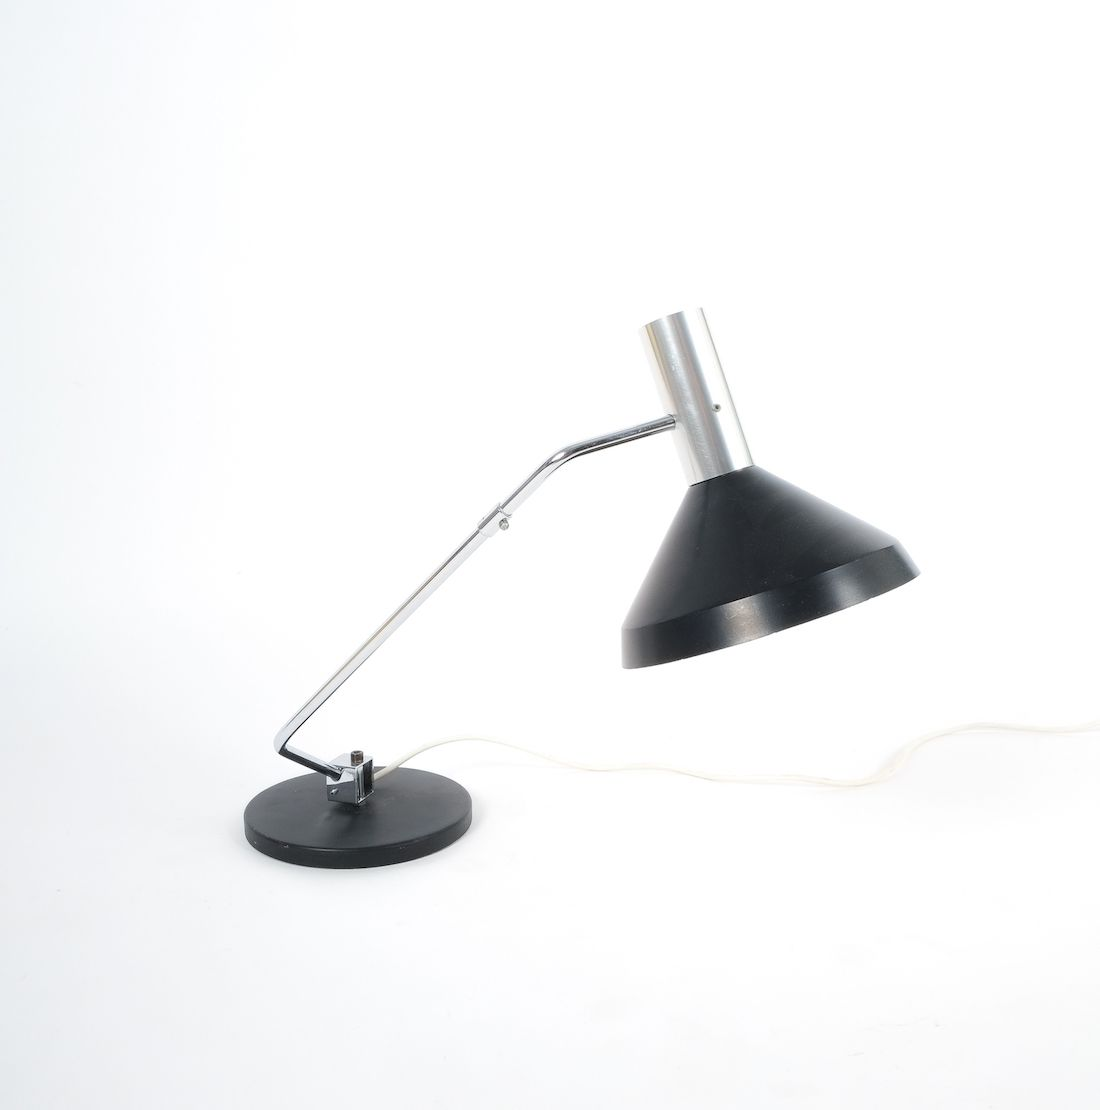 Baltensweiler Articulated Swiss Architects Table Lamp 1960